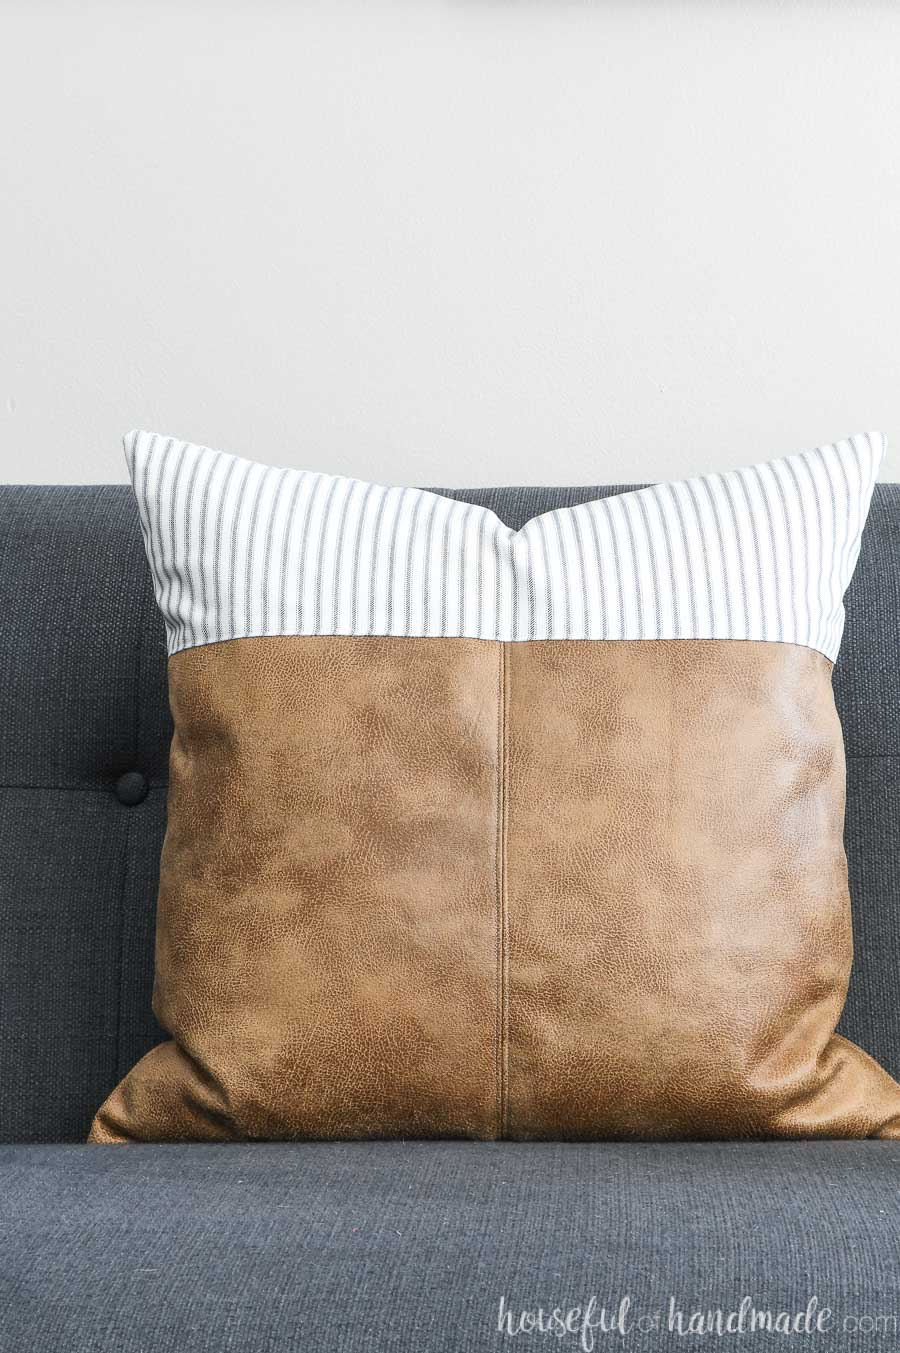 Leather pillow cover with farmhouse ticking fabric and brown leather.